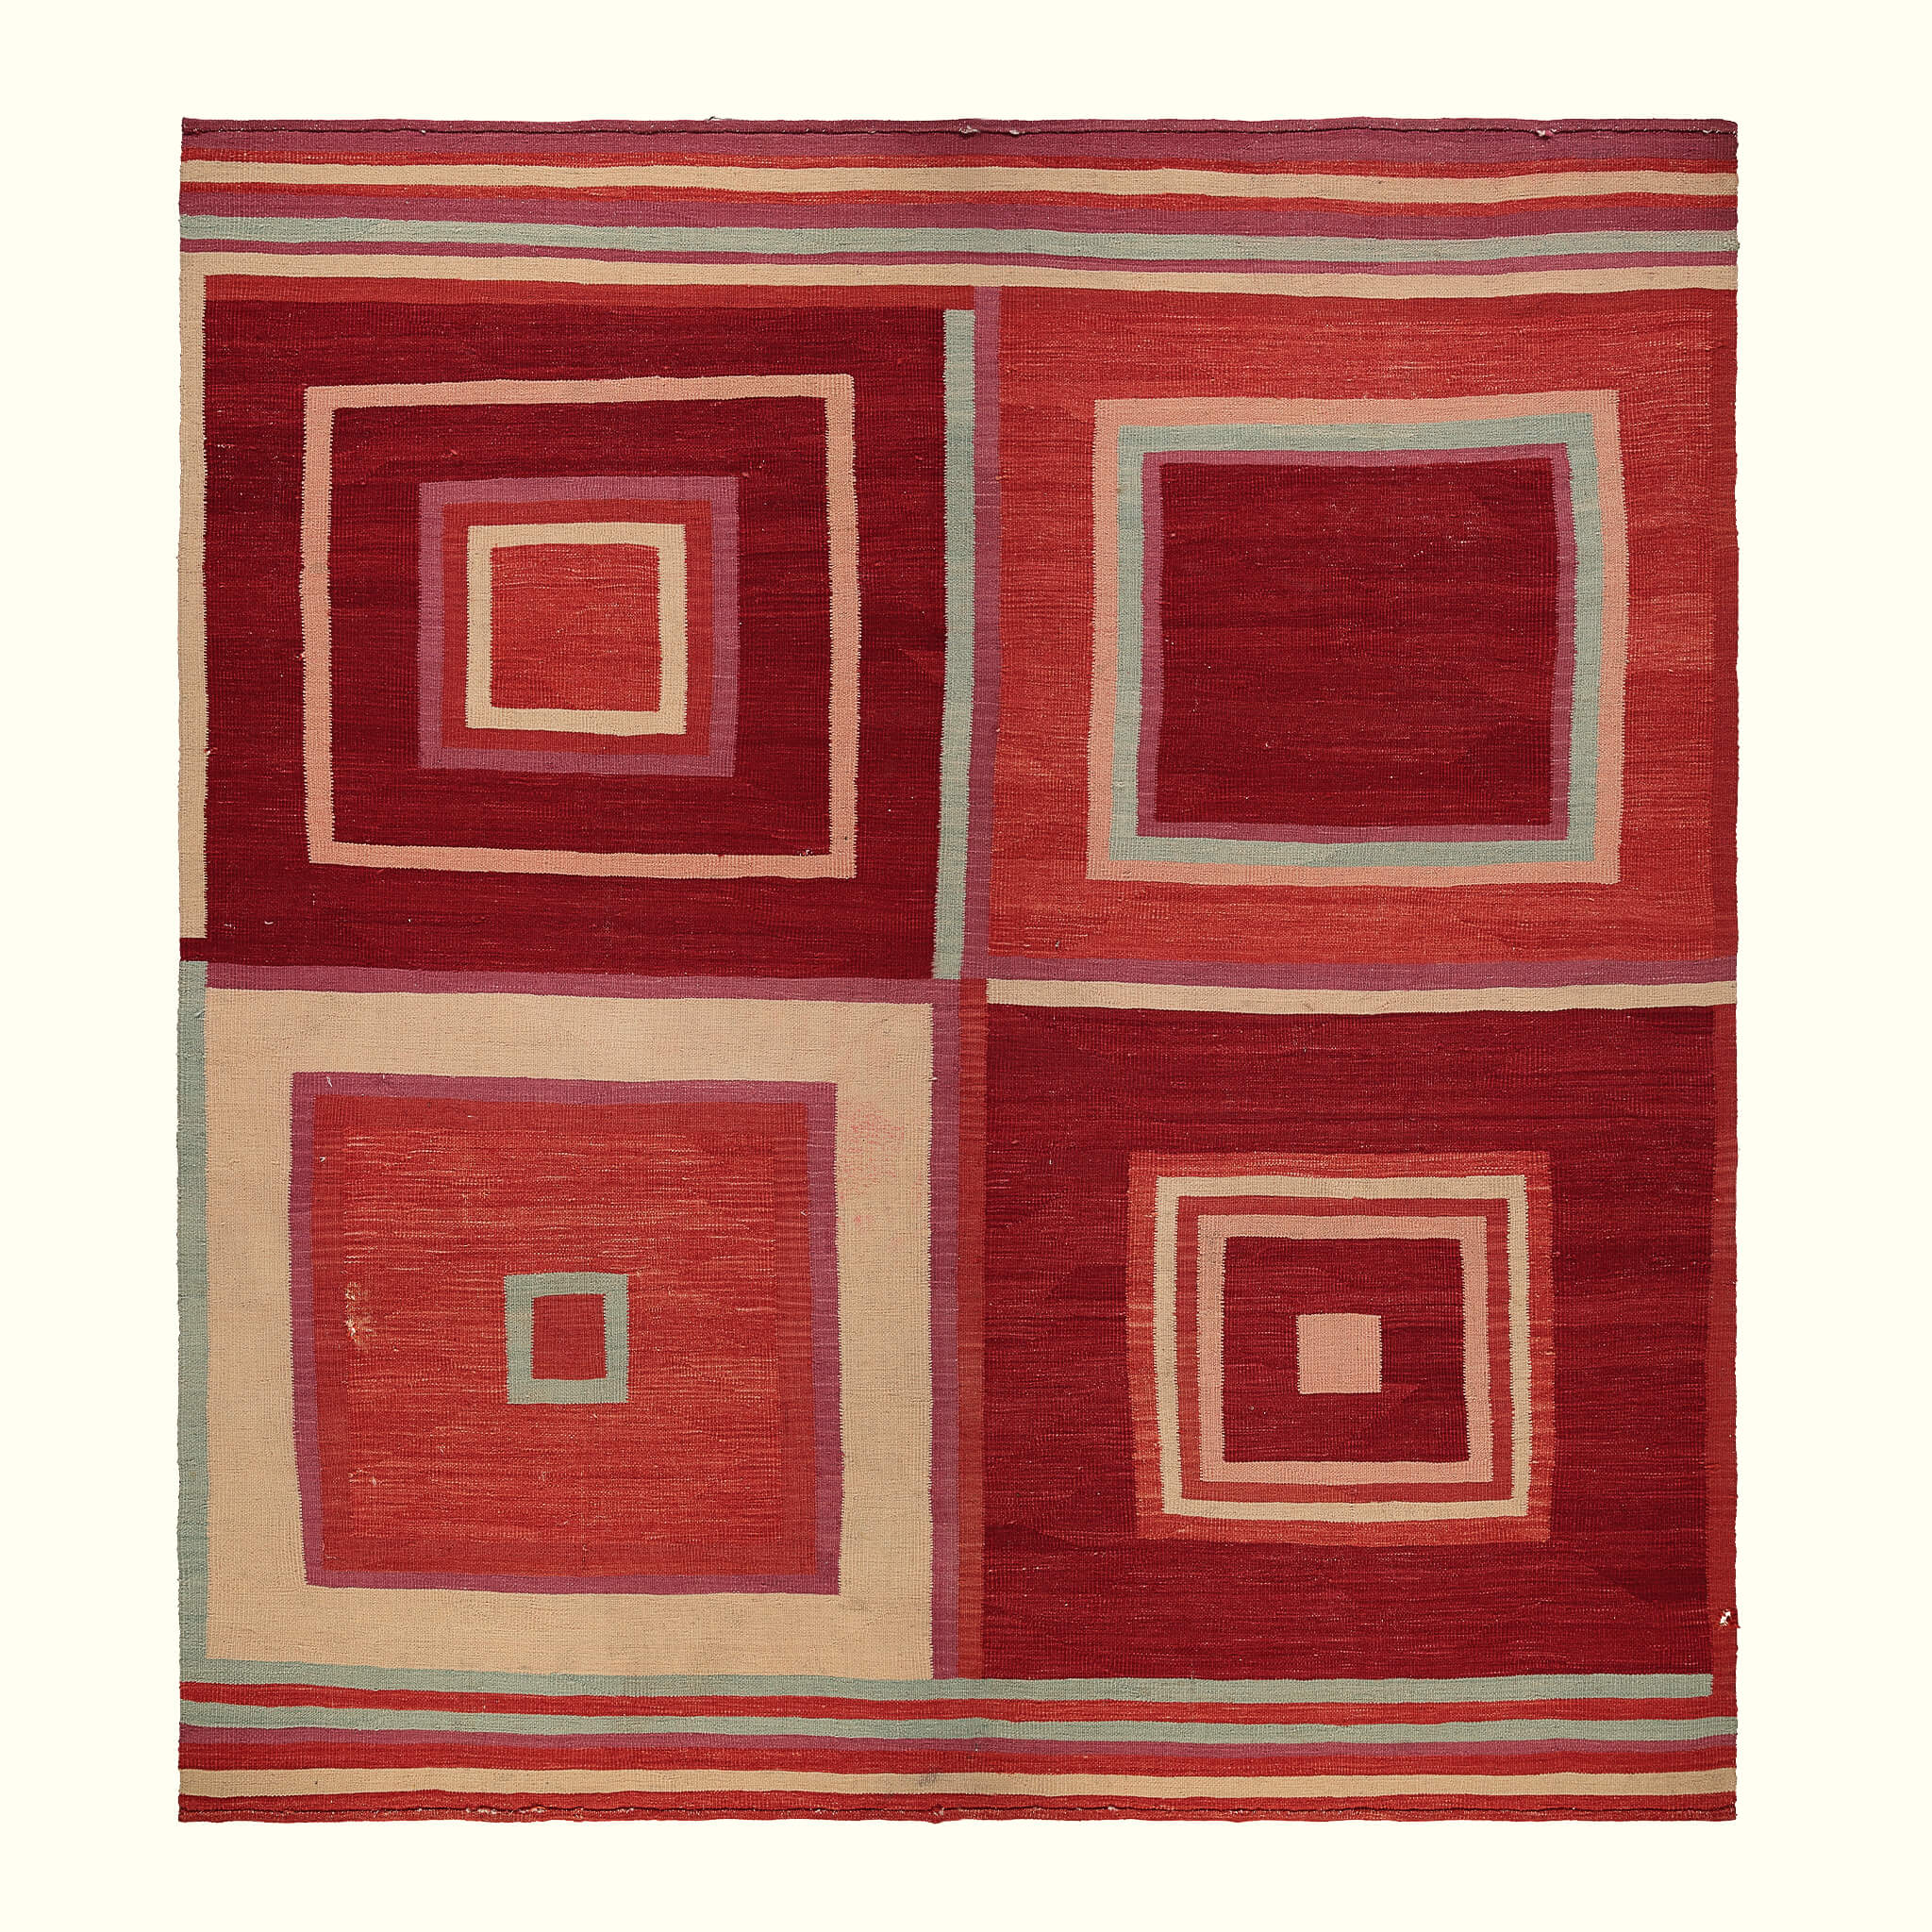 A luxury British handmade square rug by GVE in scarlet.